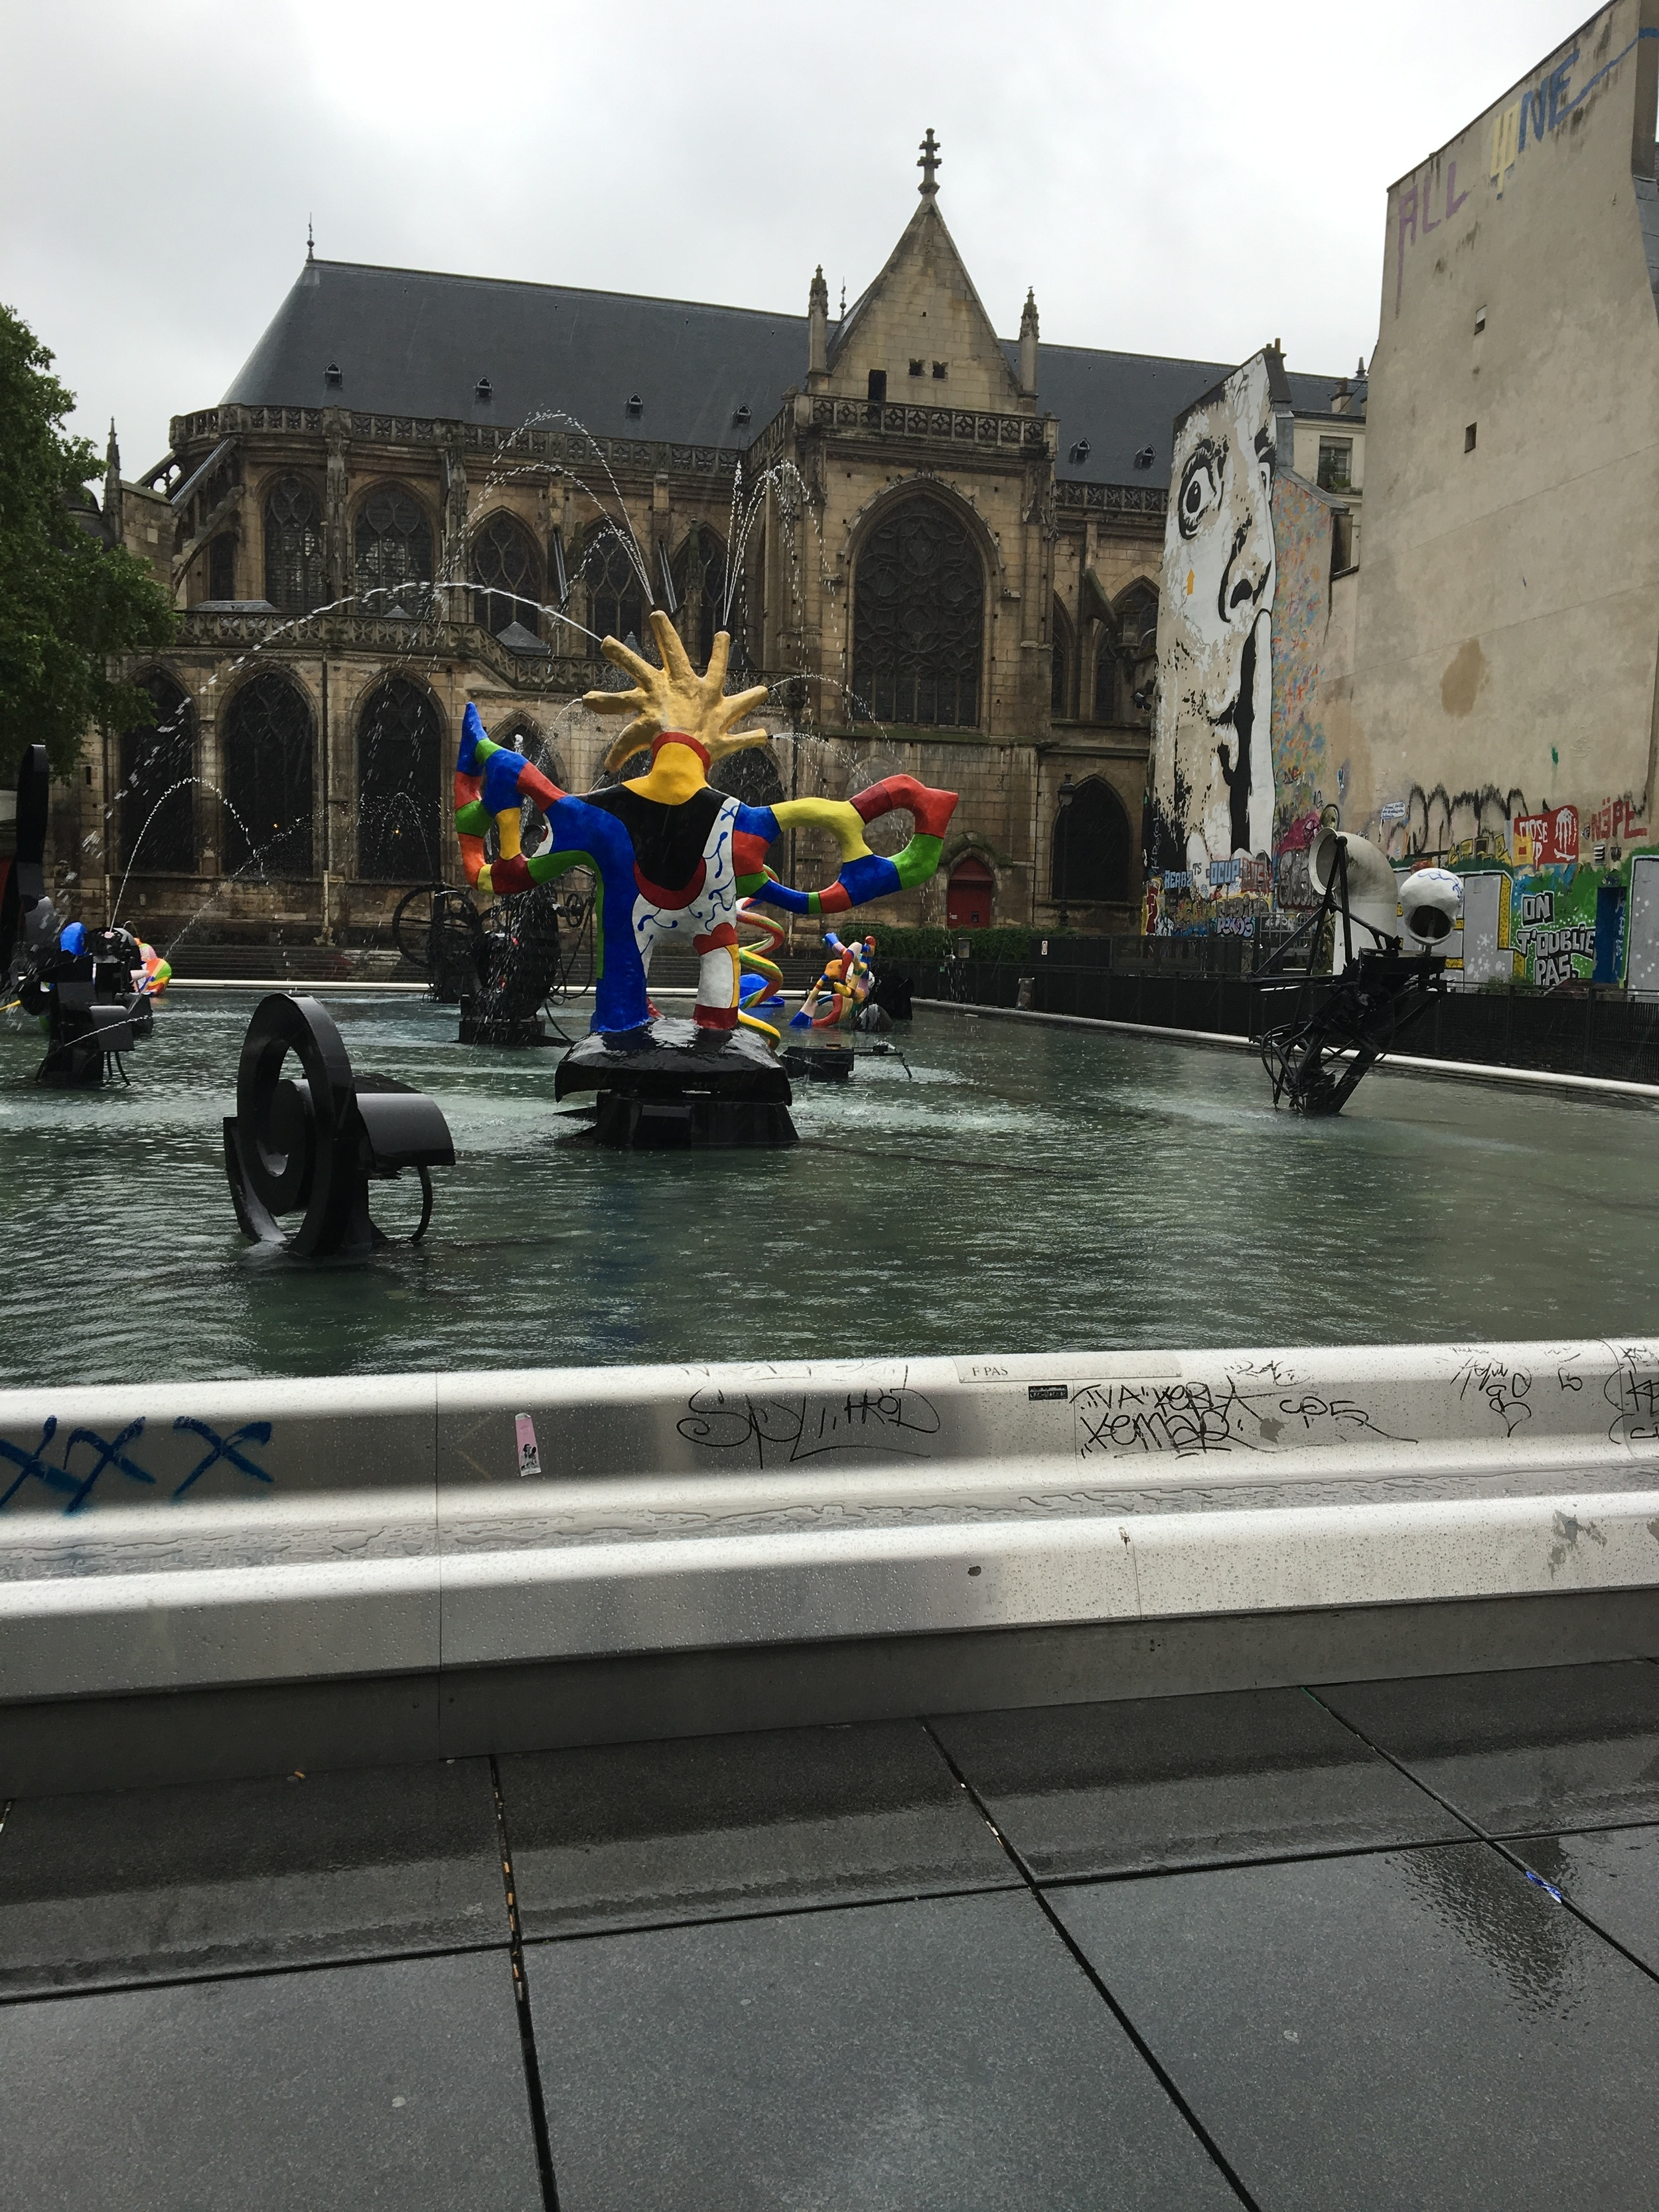 At Place de Igor Stavinsky, a contemporary fountain by Niki de St Phalle and Jean Tinguely sits in the shadow of the Gothic style St Merri 15th century church.